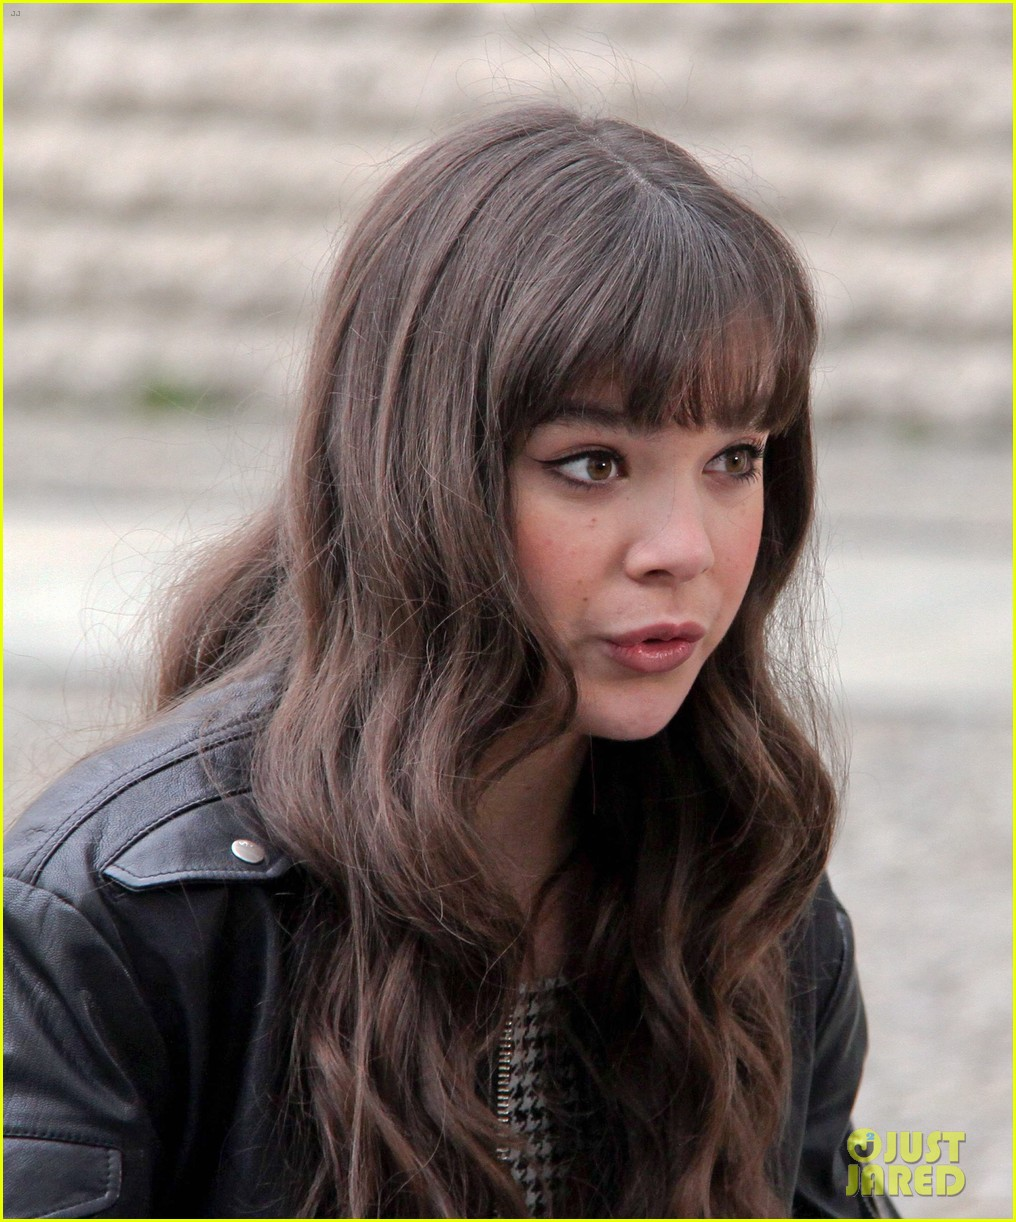 hailee steinfeld harrison ford first enders game clip watch 39